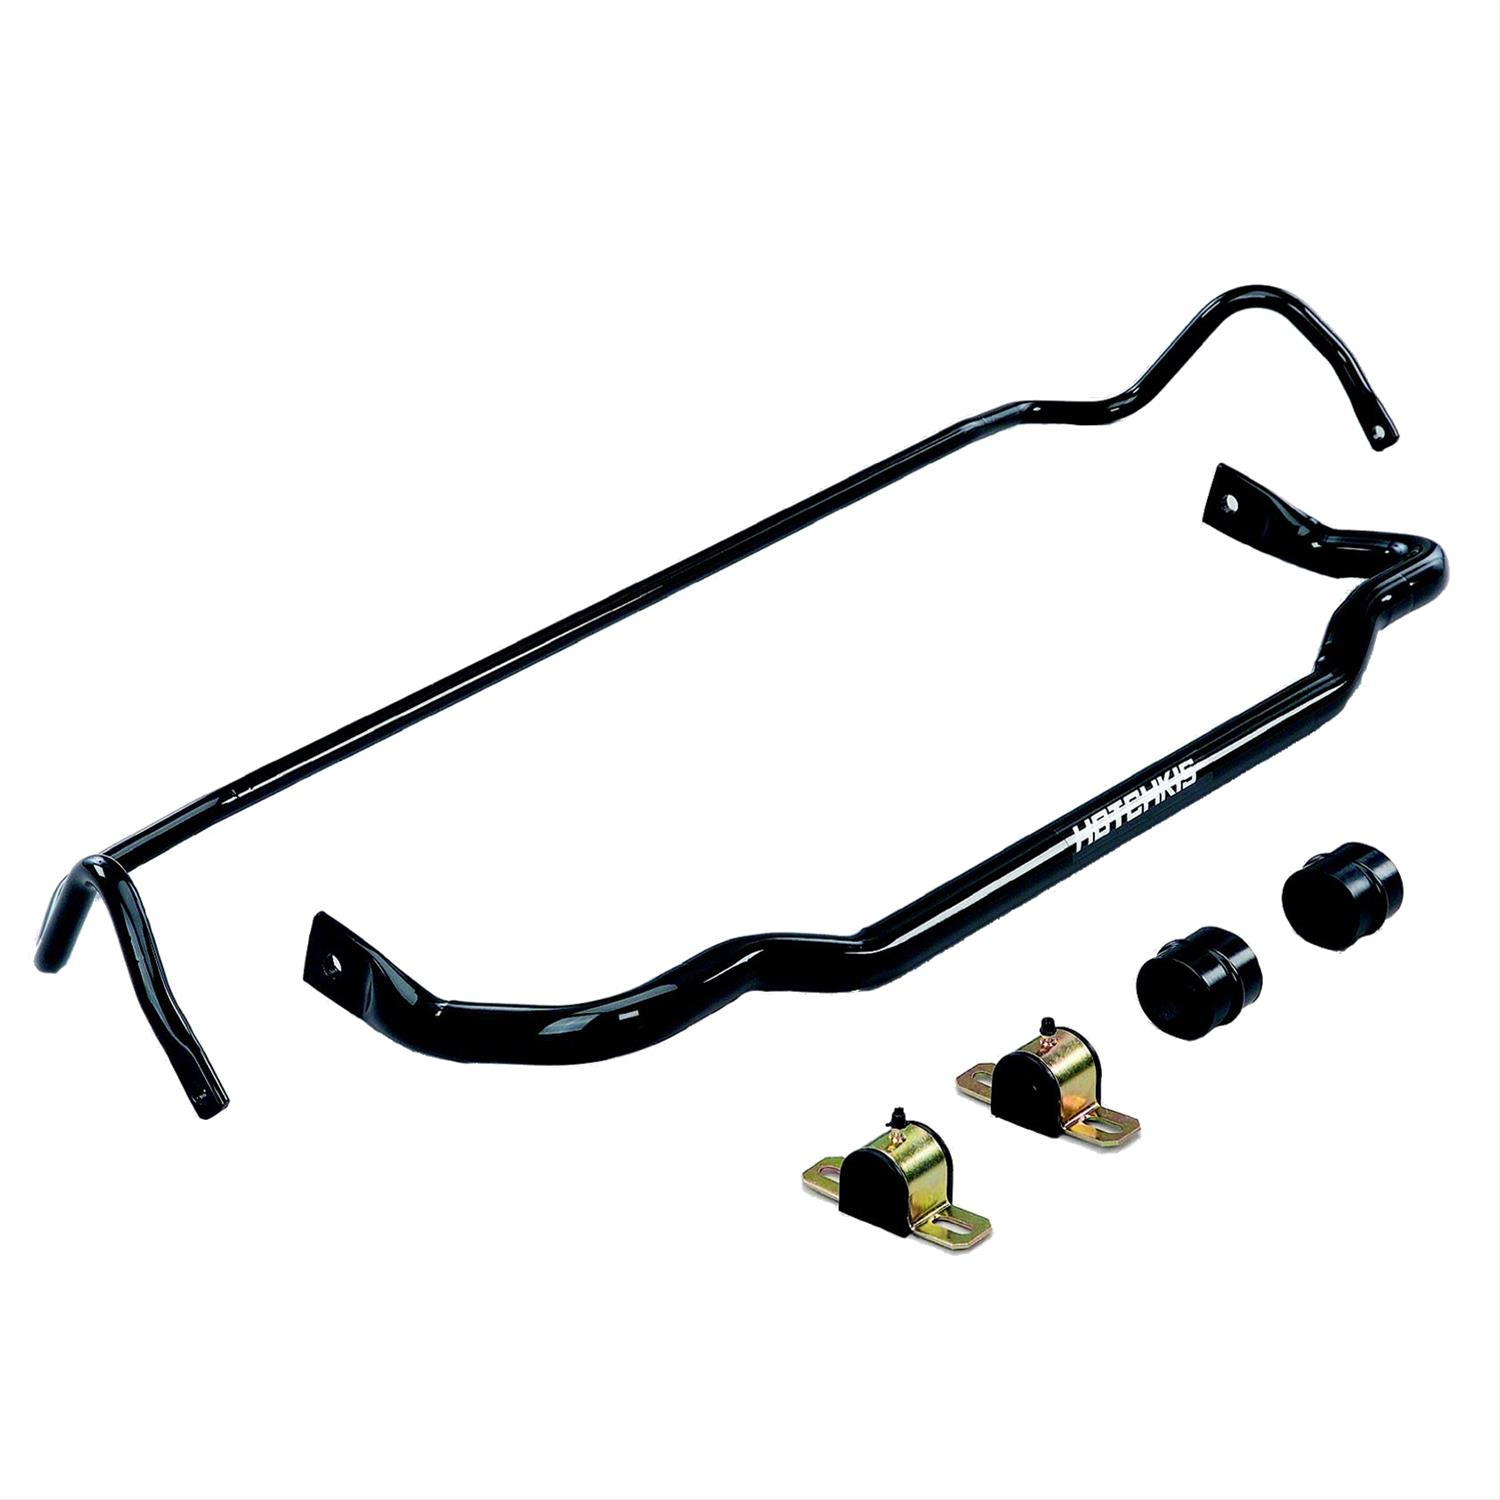 Hotchkis Anti-Sway Bar Kit 11-up Charger, Chrysler 300 RWD